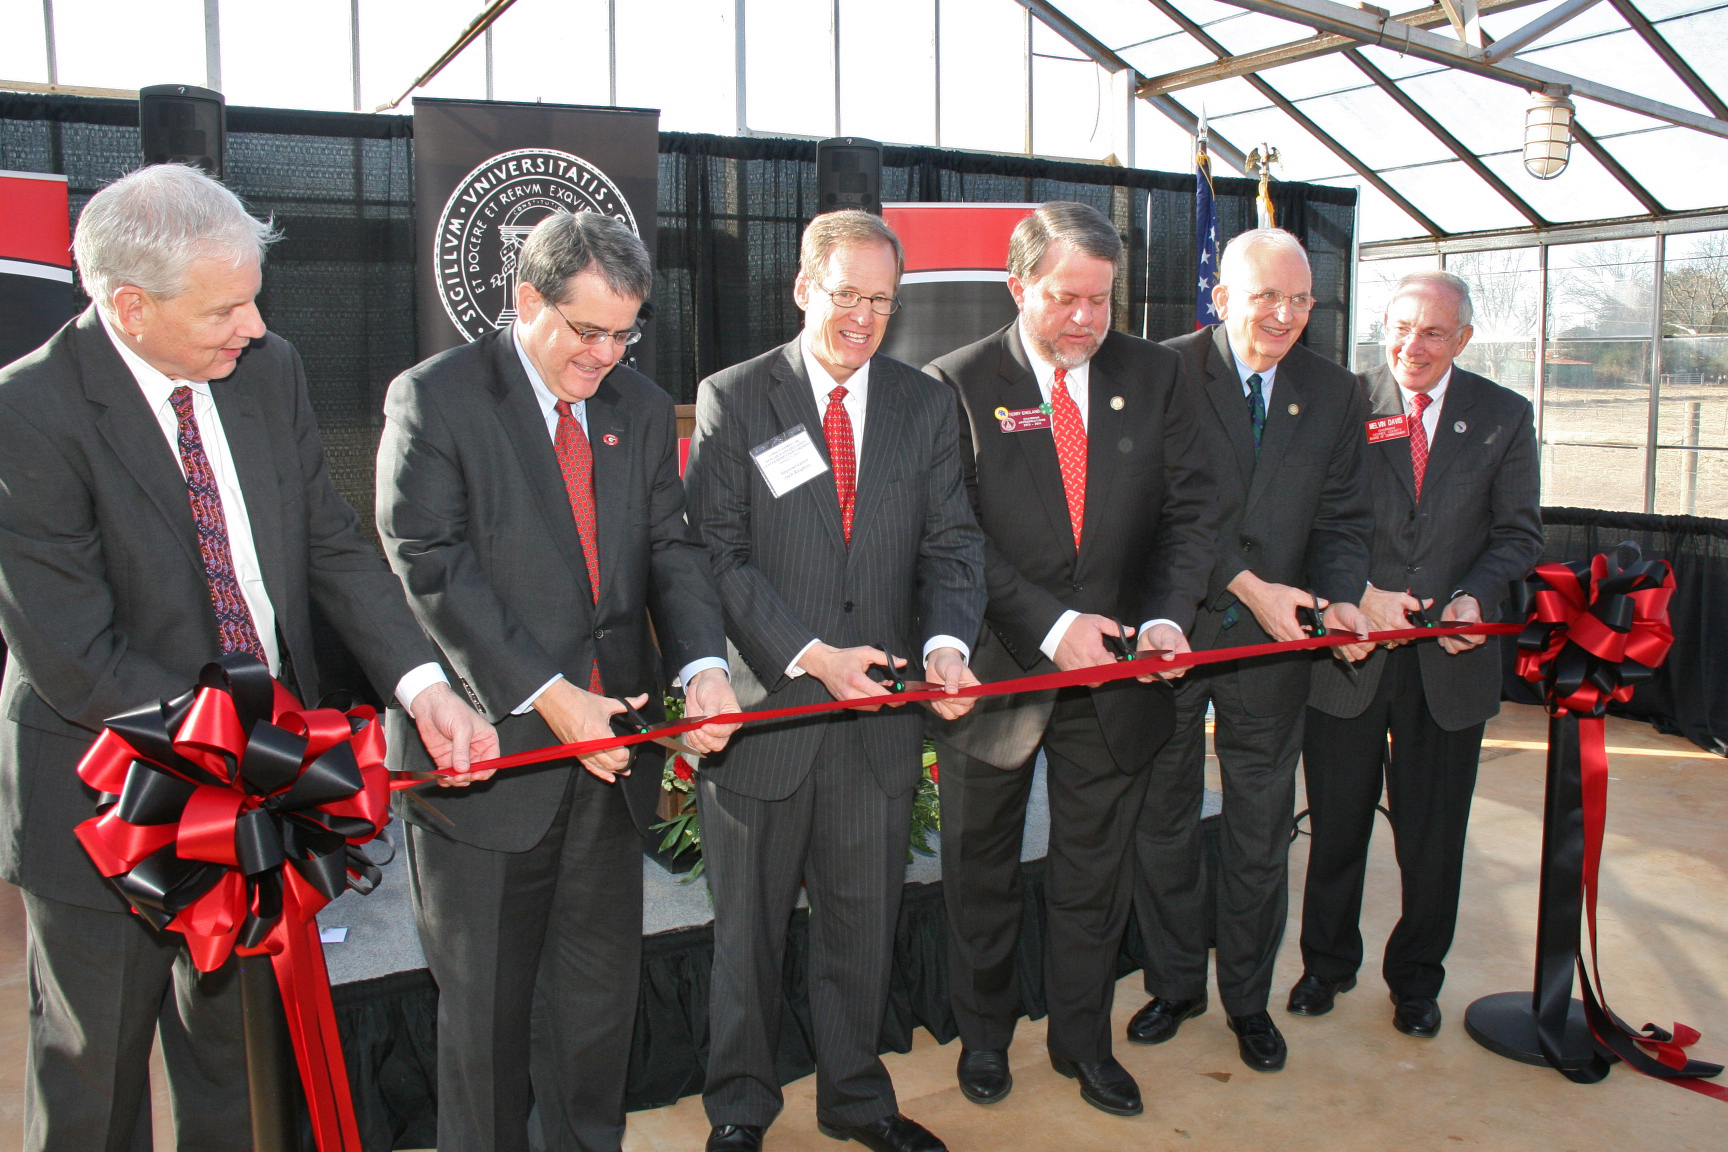 Dean J. Scott Angle, of the UGA College of Agricultural and Environmental Sciences; UGA President Jere Morehead, Rep. Jack Kingston, state Rep. Terry England, Georgia Commissioner of Agriculture Gary Black and Oconee County Commission Chairman Melvin Davis cut a ceremonial ribbon at UGA's J. Phil Campbell Sr. Research and Education Center Tuesday, Jan. 21.